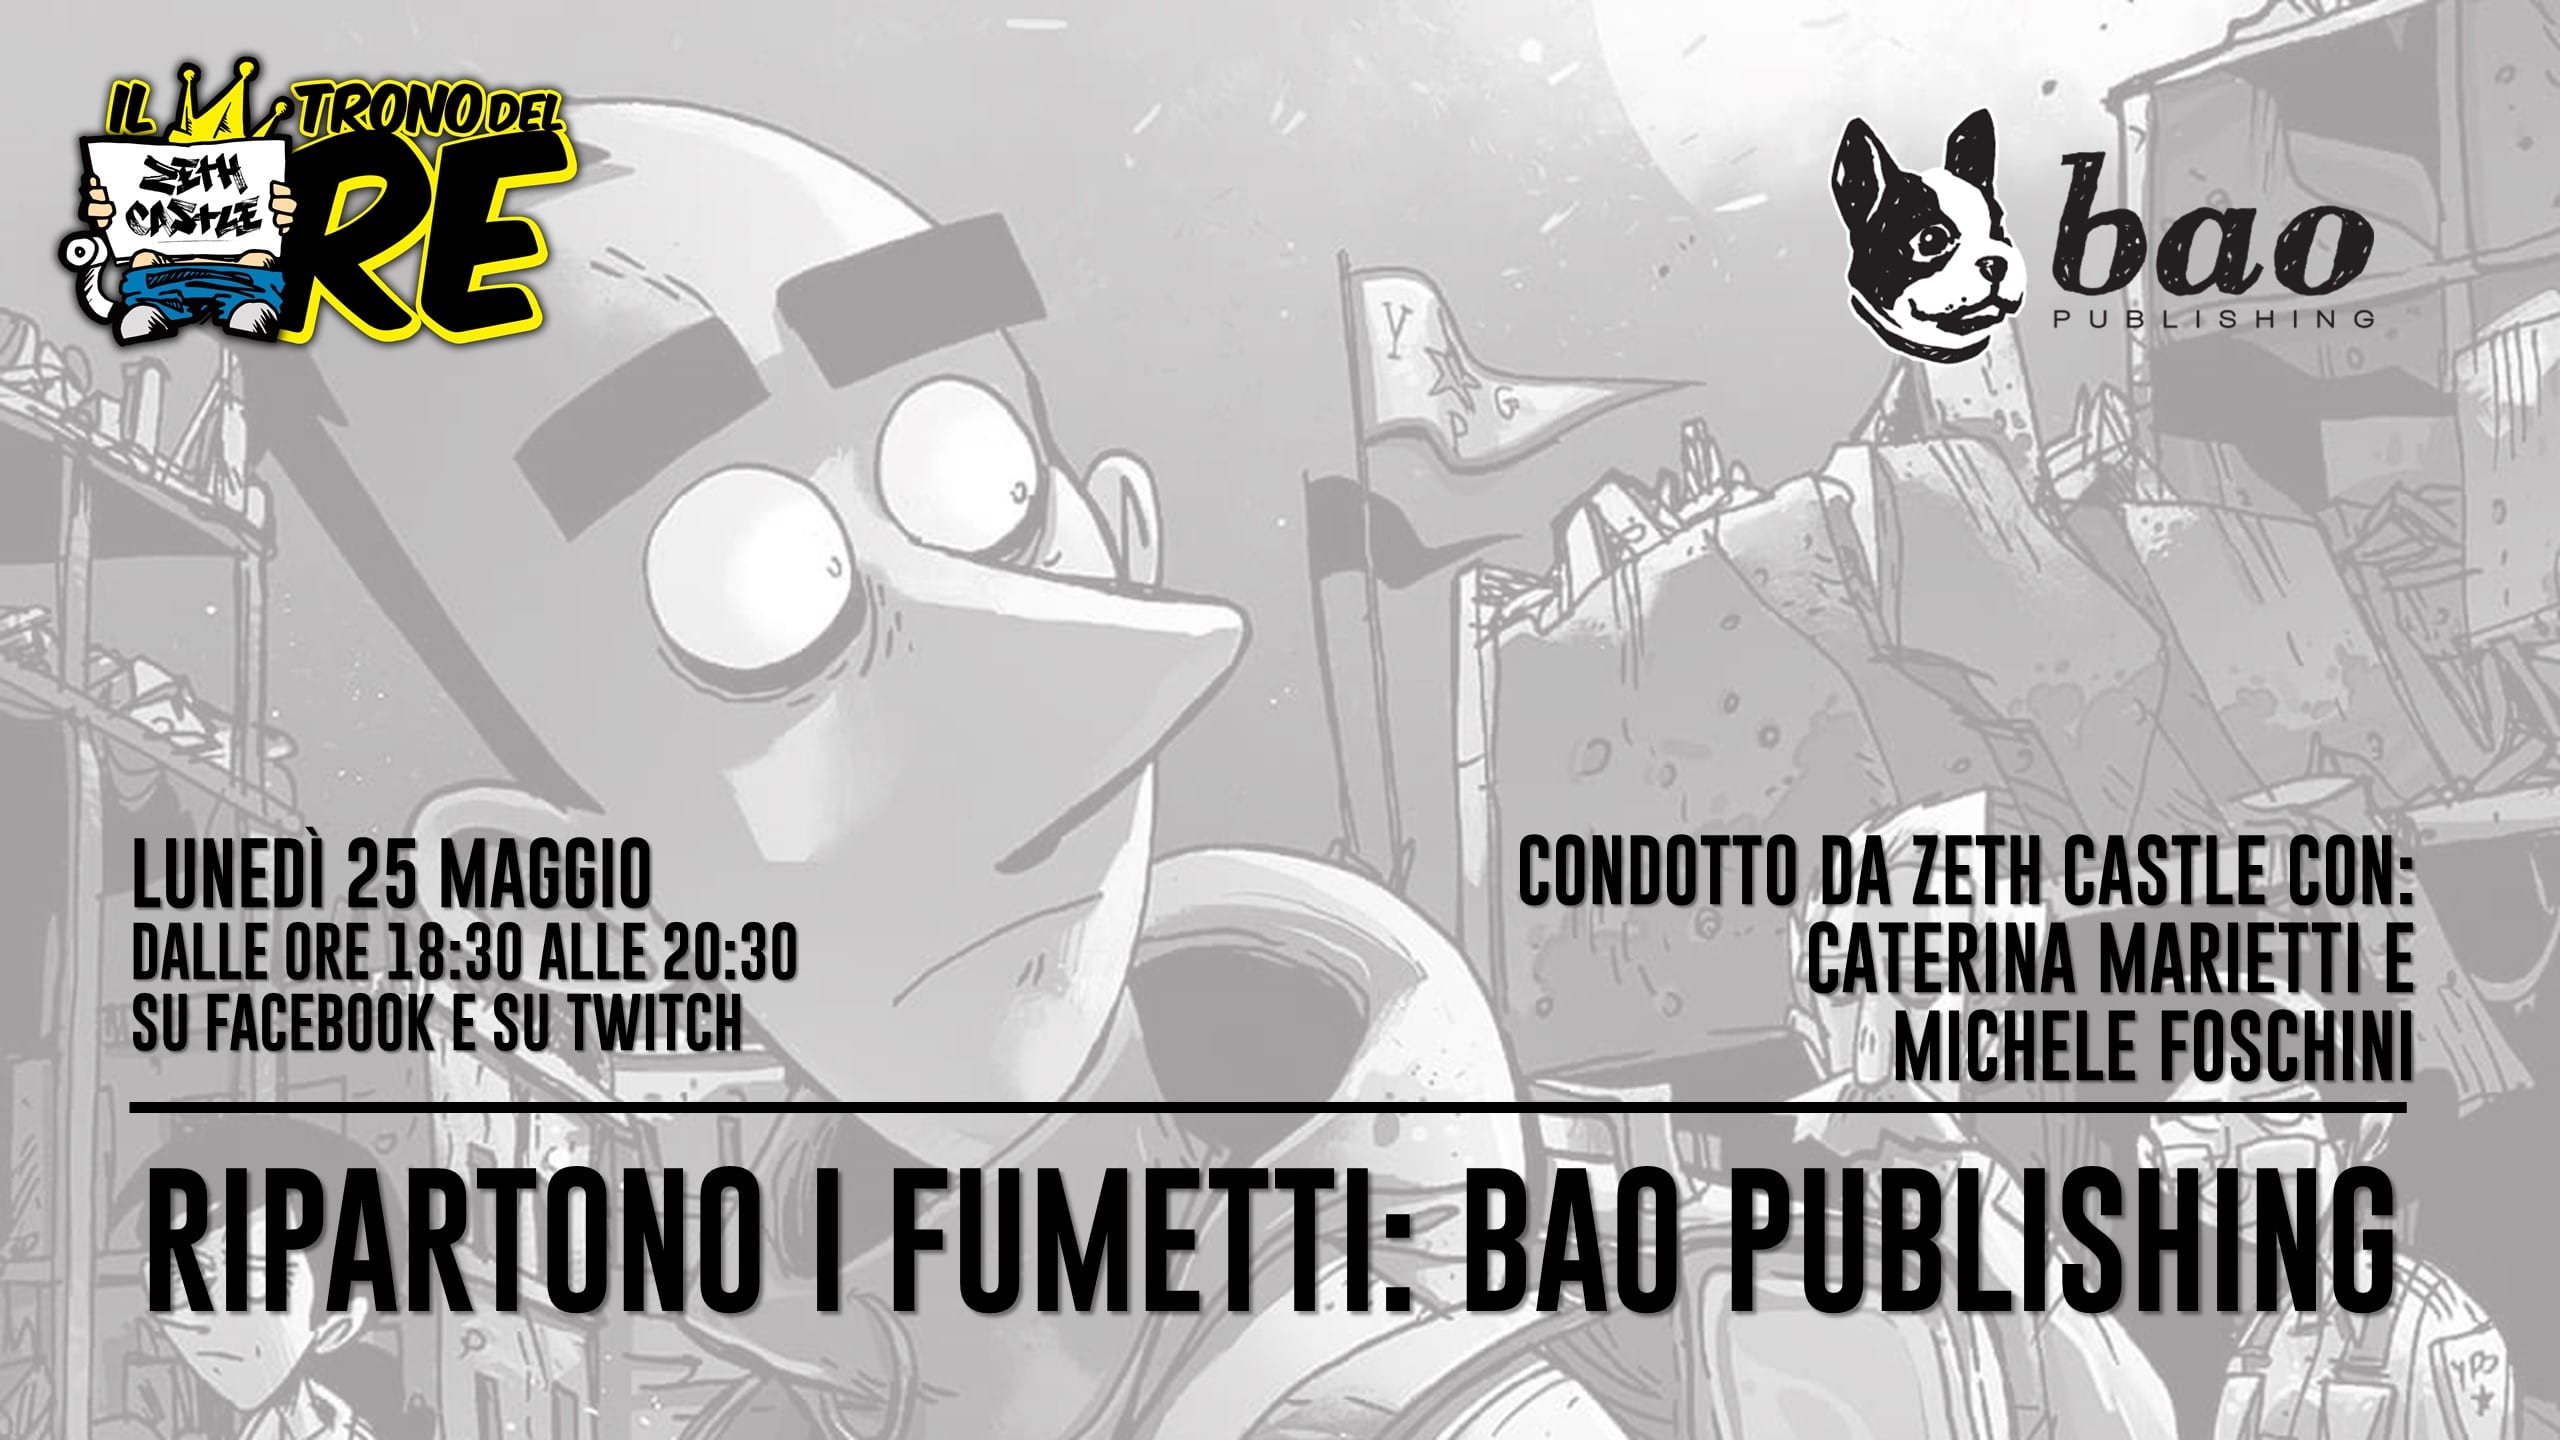 Il Trono del Re Bao Publishing